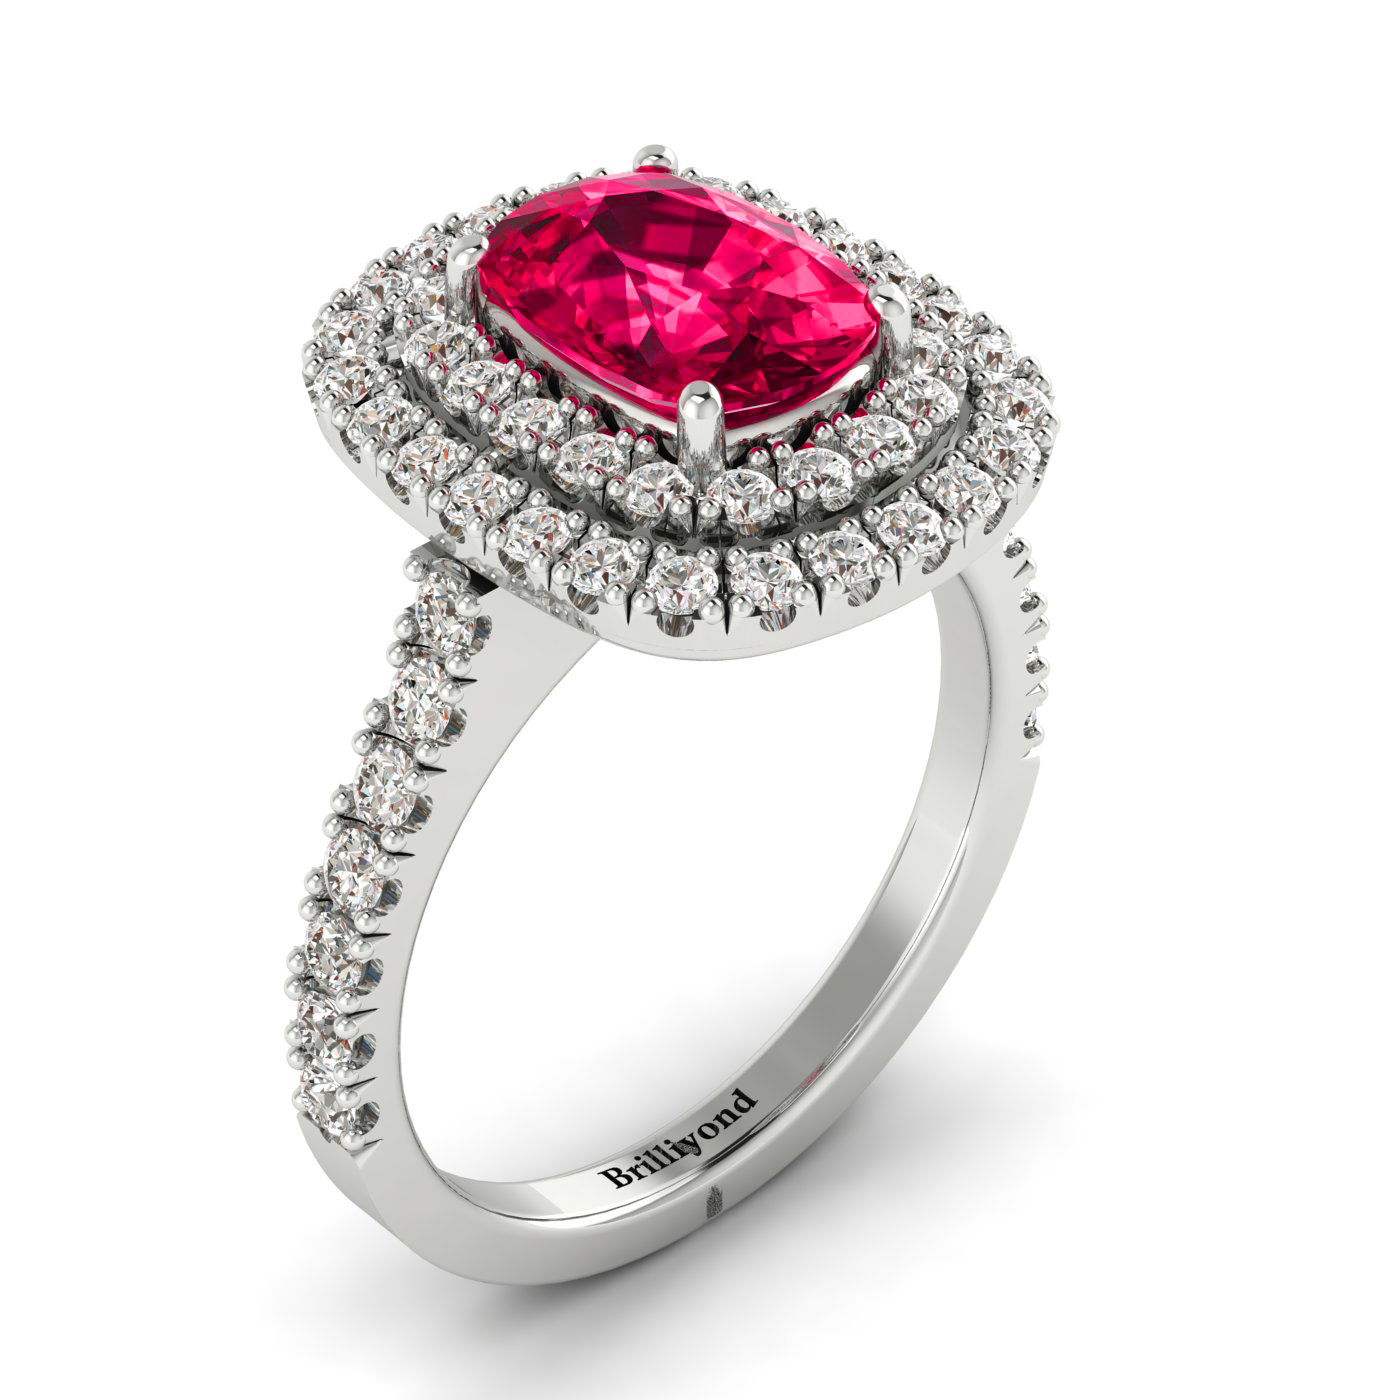 Sophisticated Ruby Ring with Conflict-free Accent Diamonds by Brilliyond